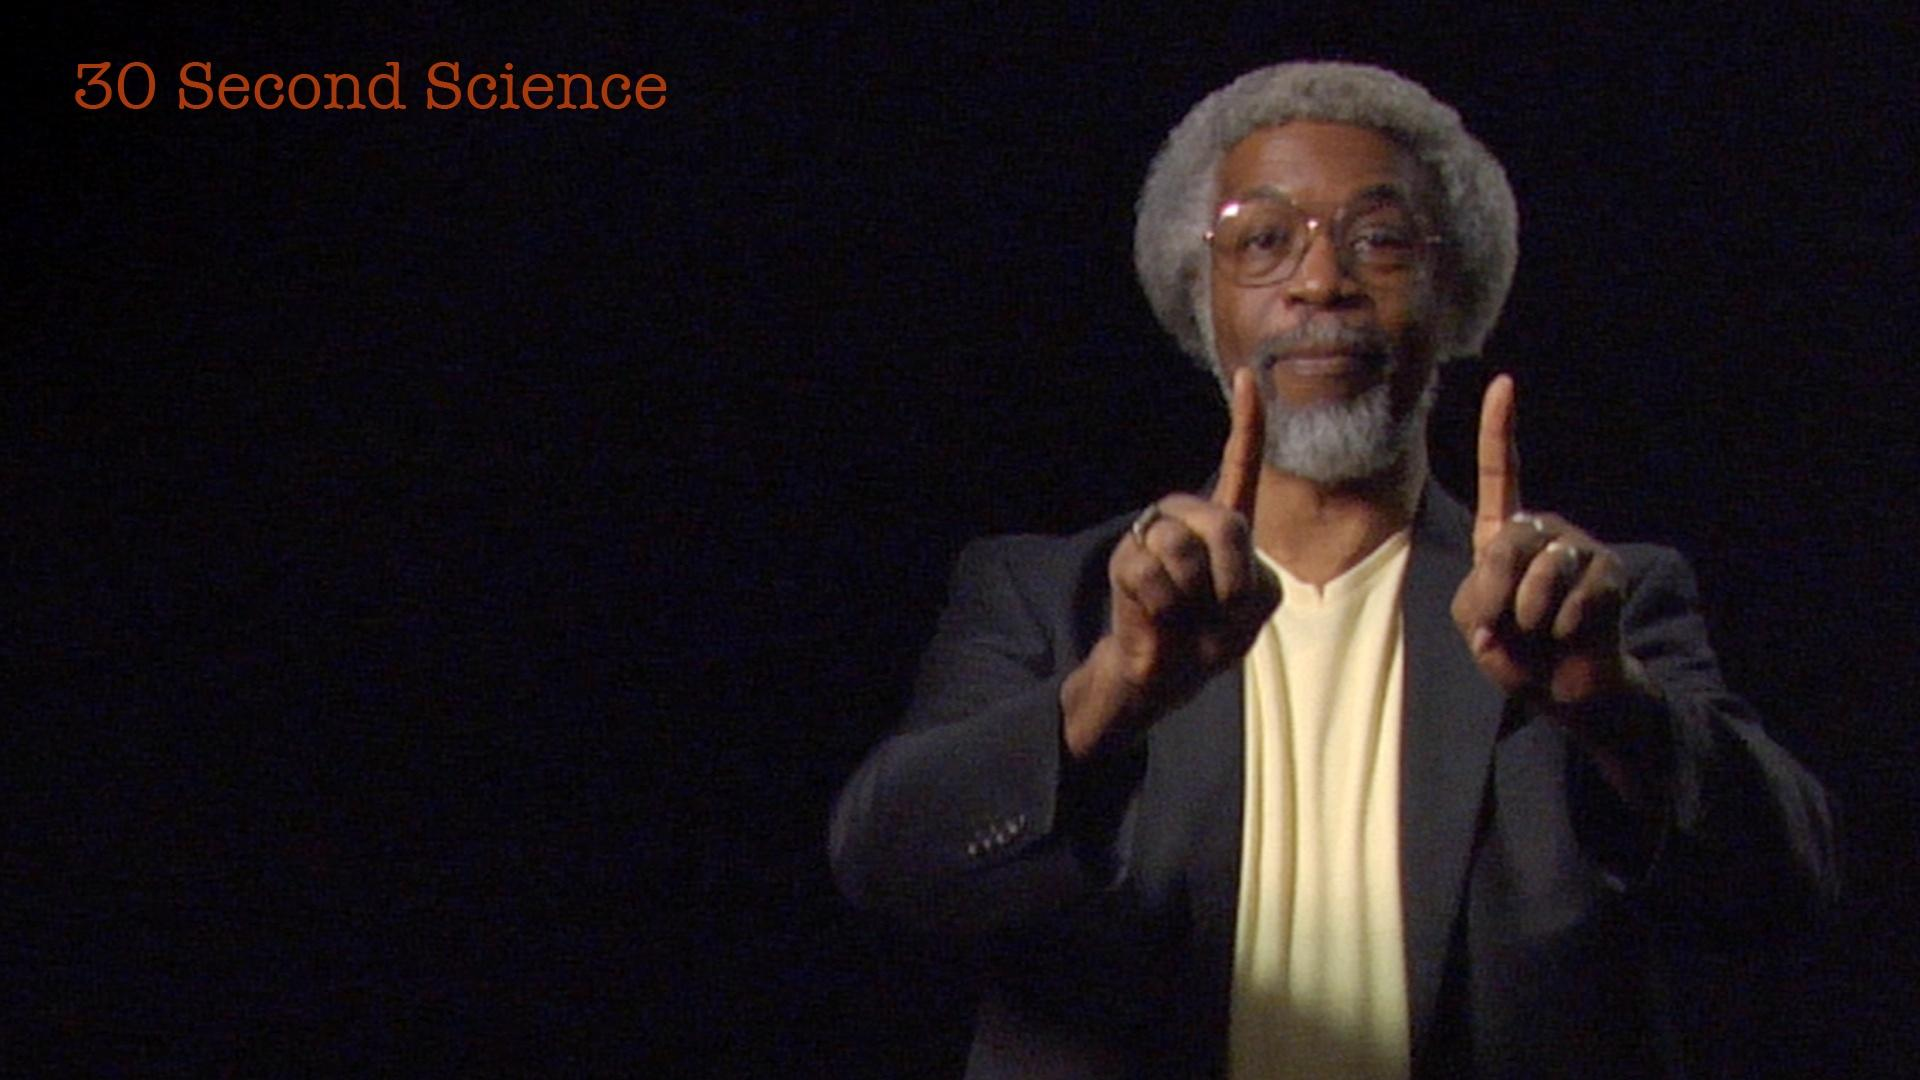 30 Second Science: Jim Gates image